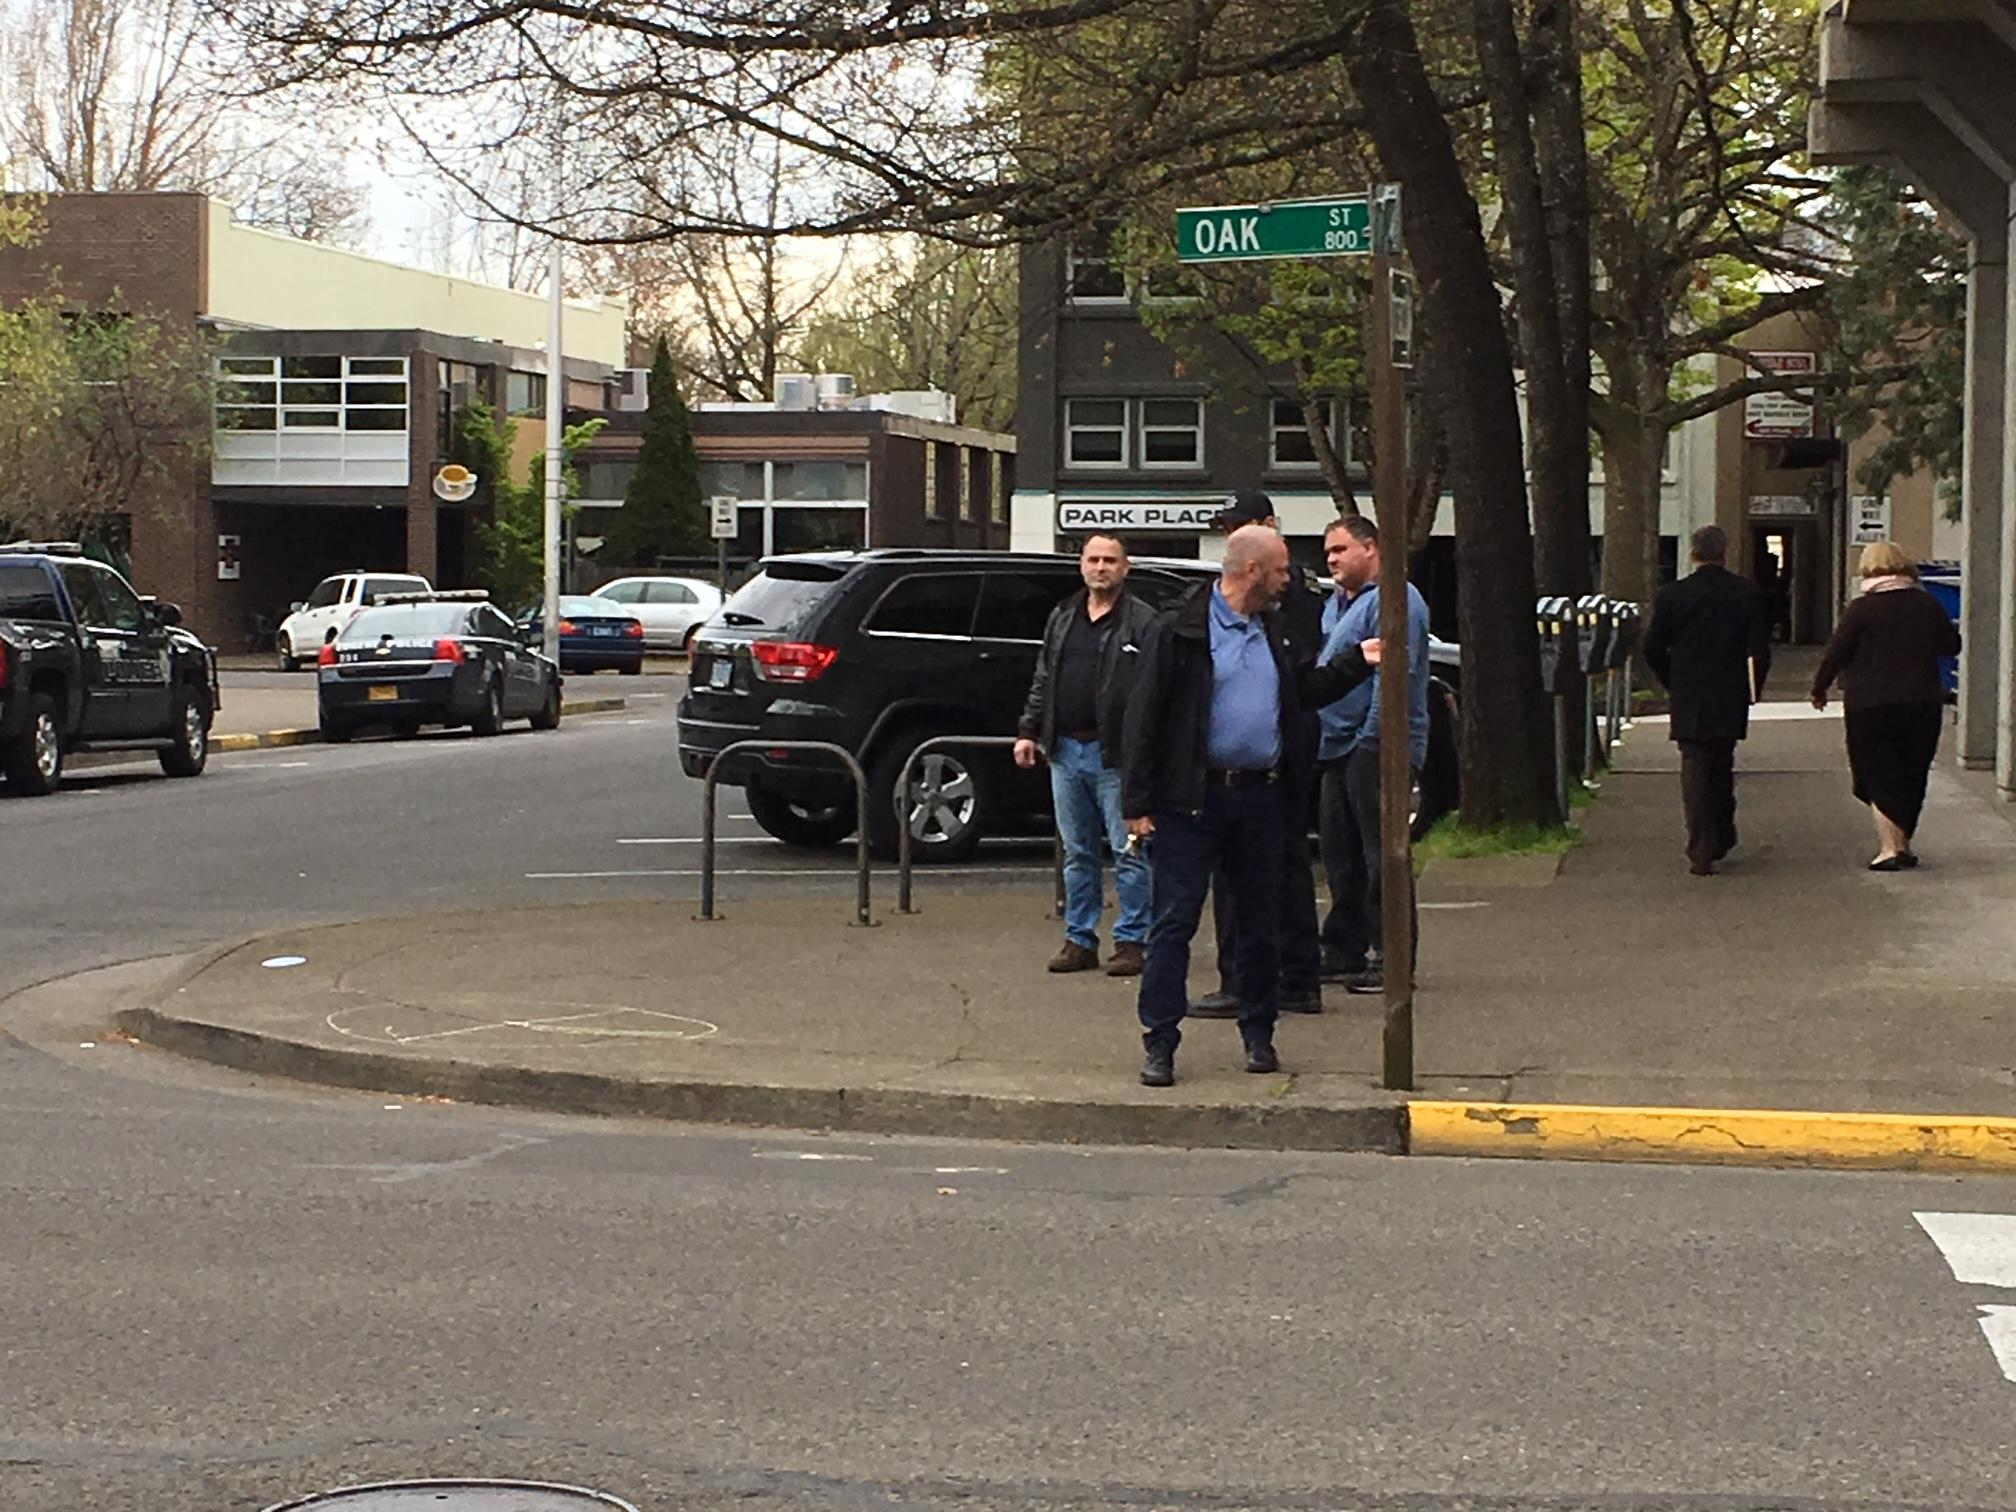 Police investigate a reported disturbance in downtown Eugene, Apr. 11, 2018. (SBG)